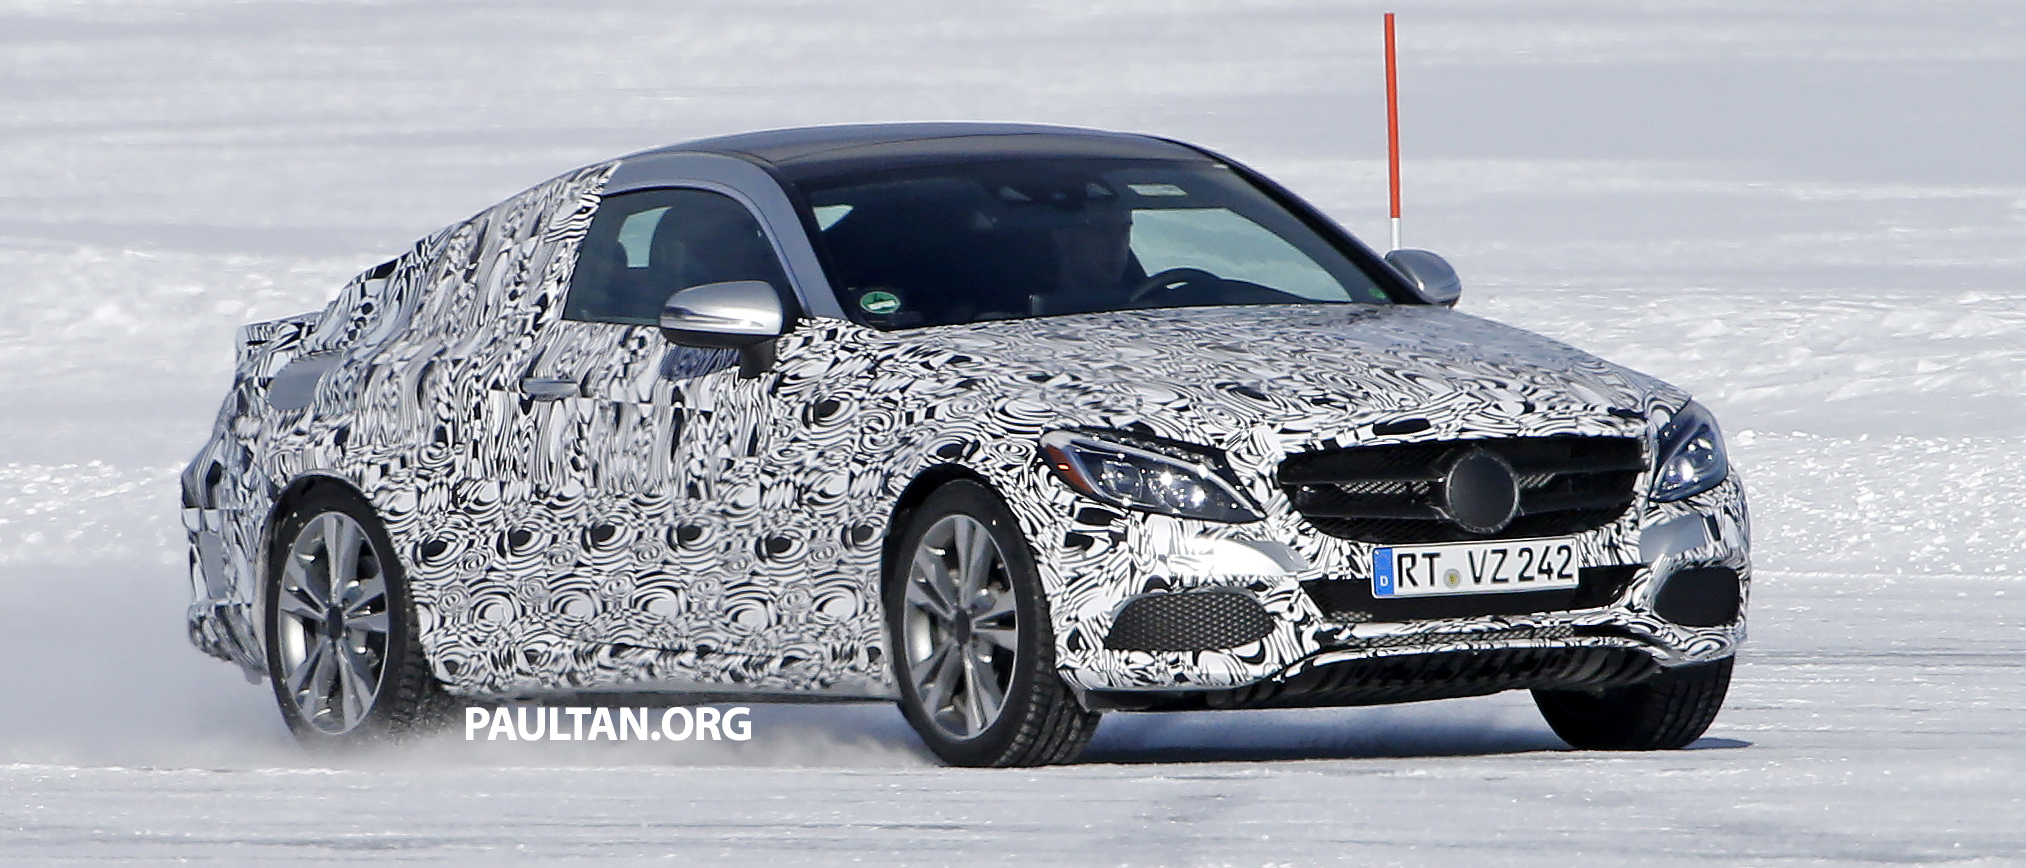 Spied Mercedes Benz C Class Coupe Figure Skating Image 325550